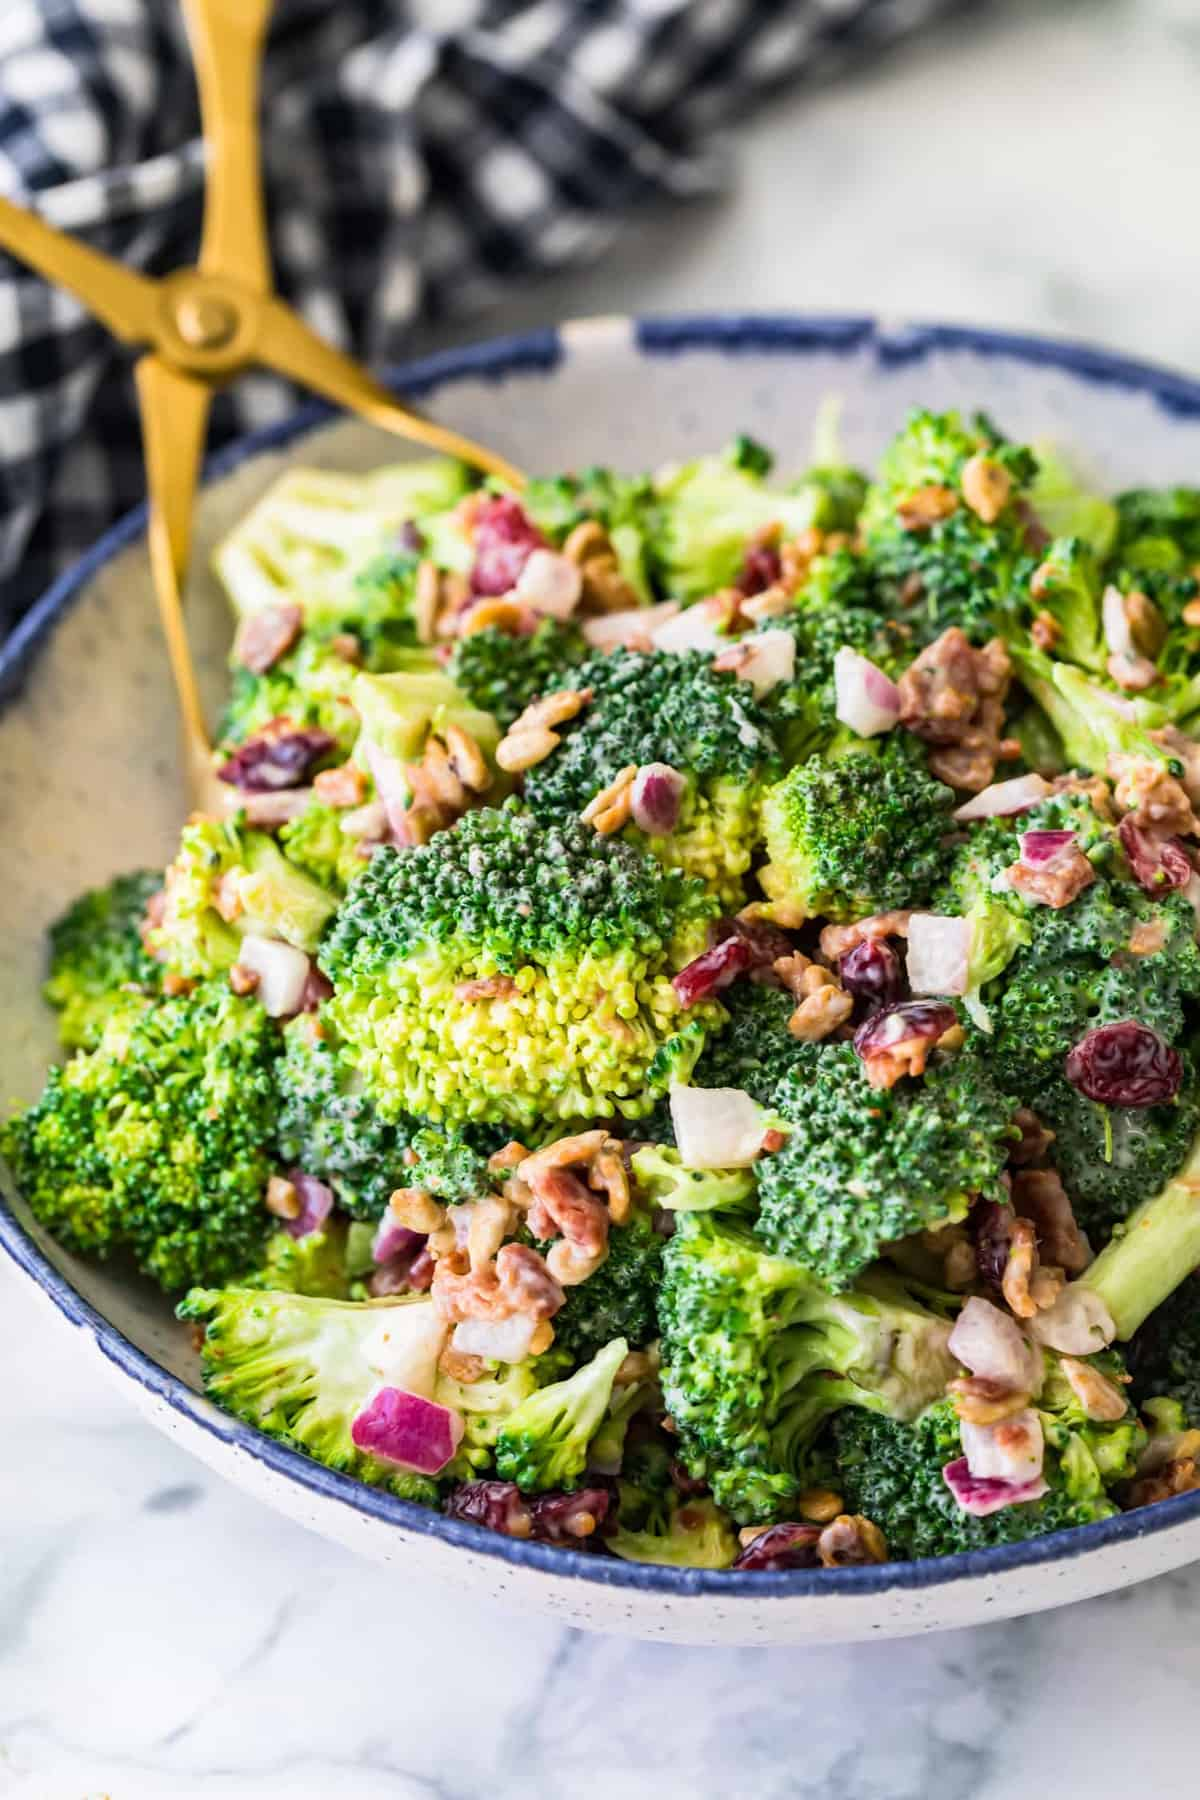 Close up of Broccoli salad in a blue and white bowl